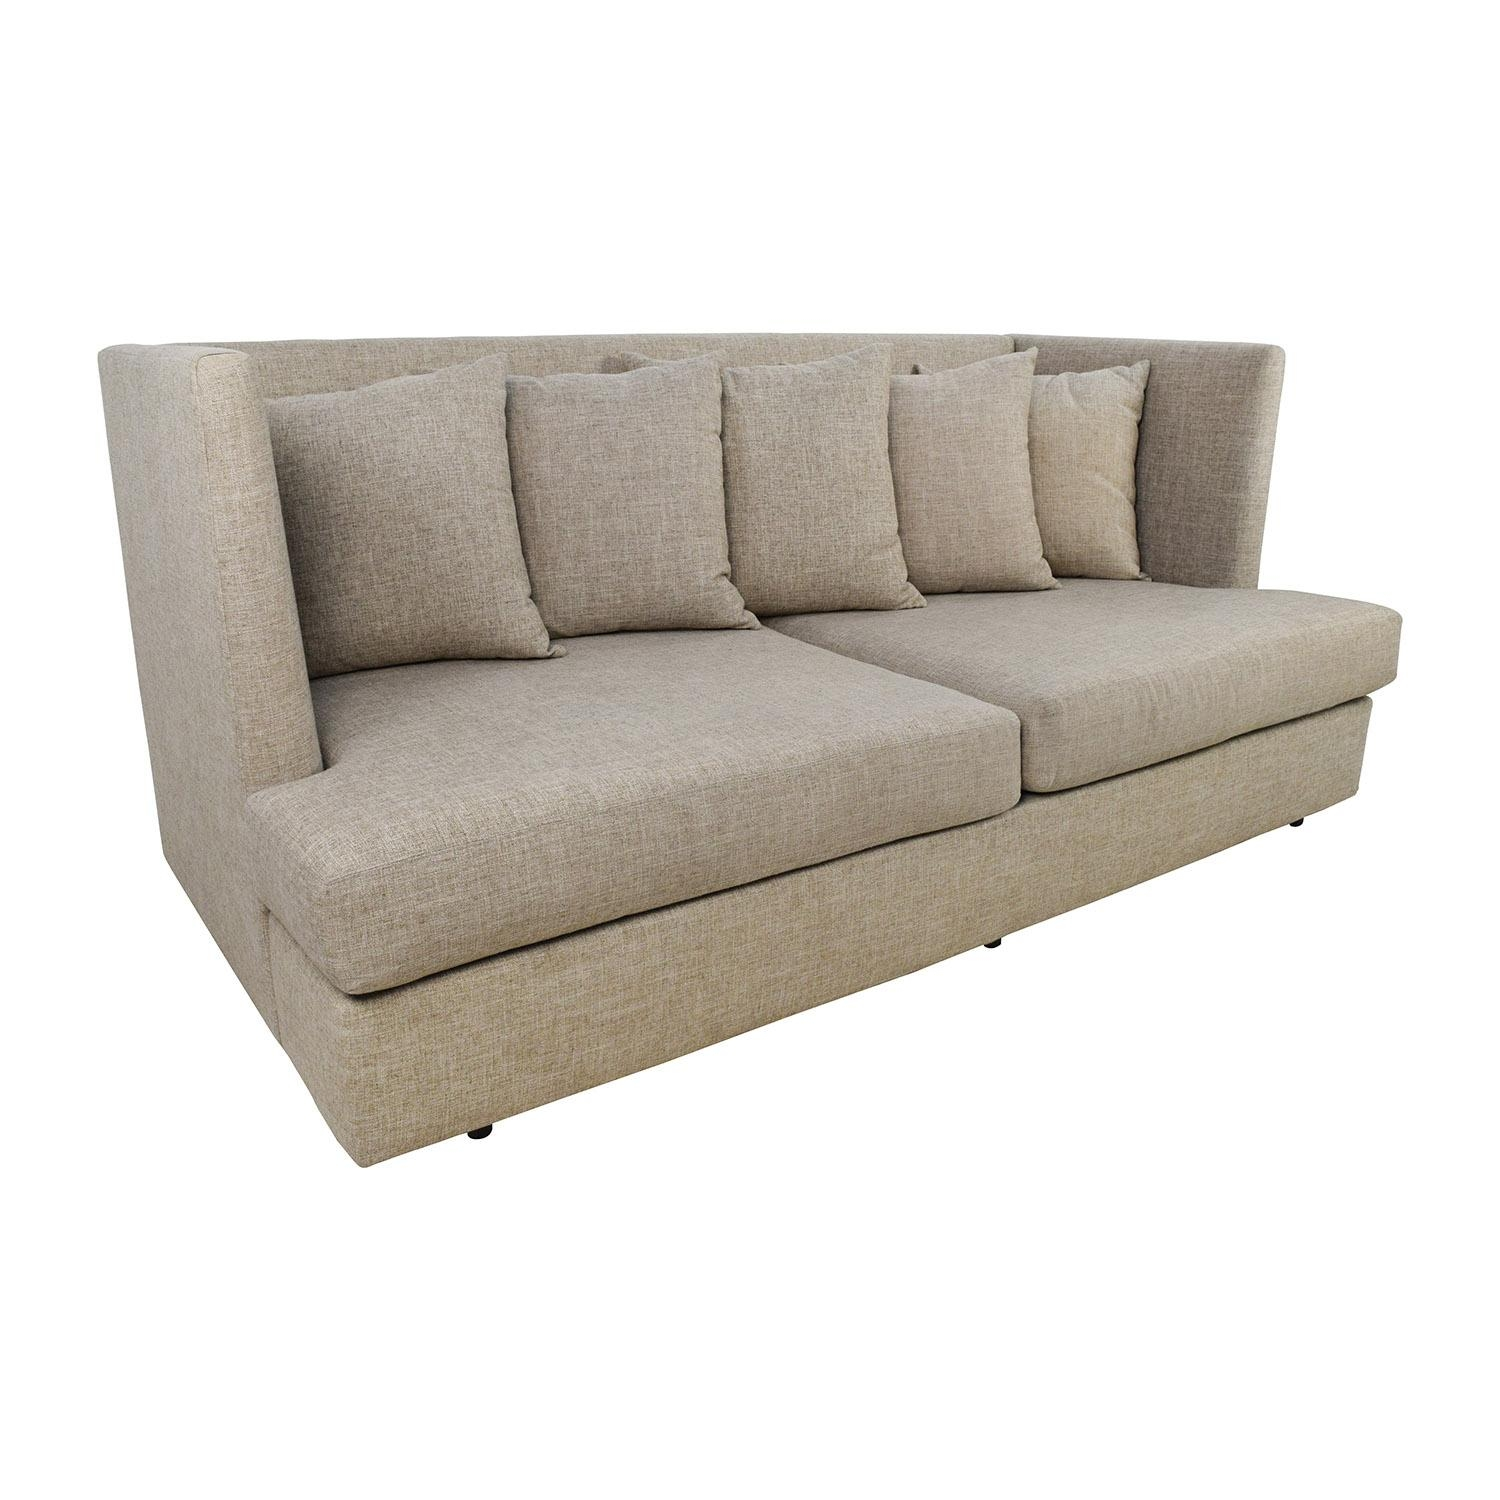 34% Off – Crate And Barrel Crate & Barrel Shelter Beige Couch / Sofas Regarding Crate And Barrel Sleeper Sofas (Image 2 of 20)